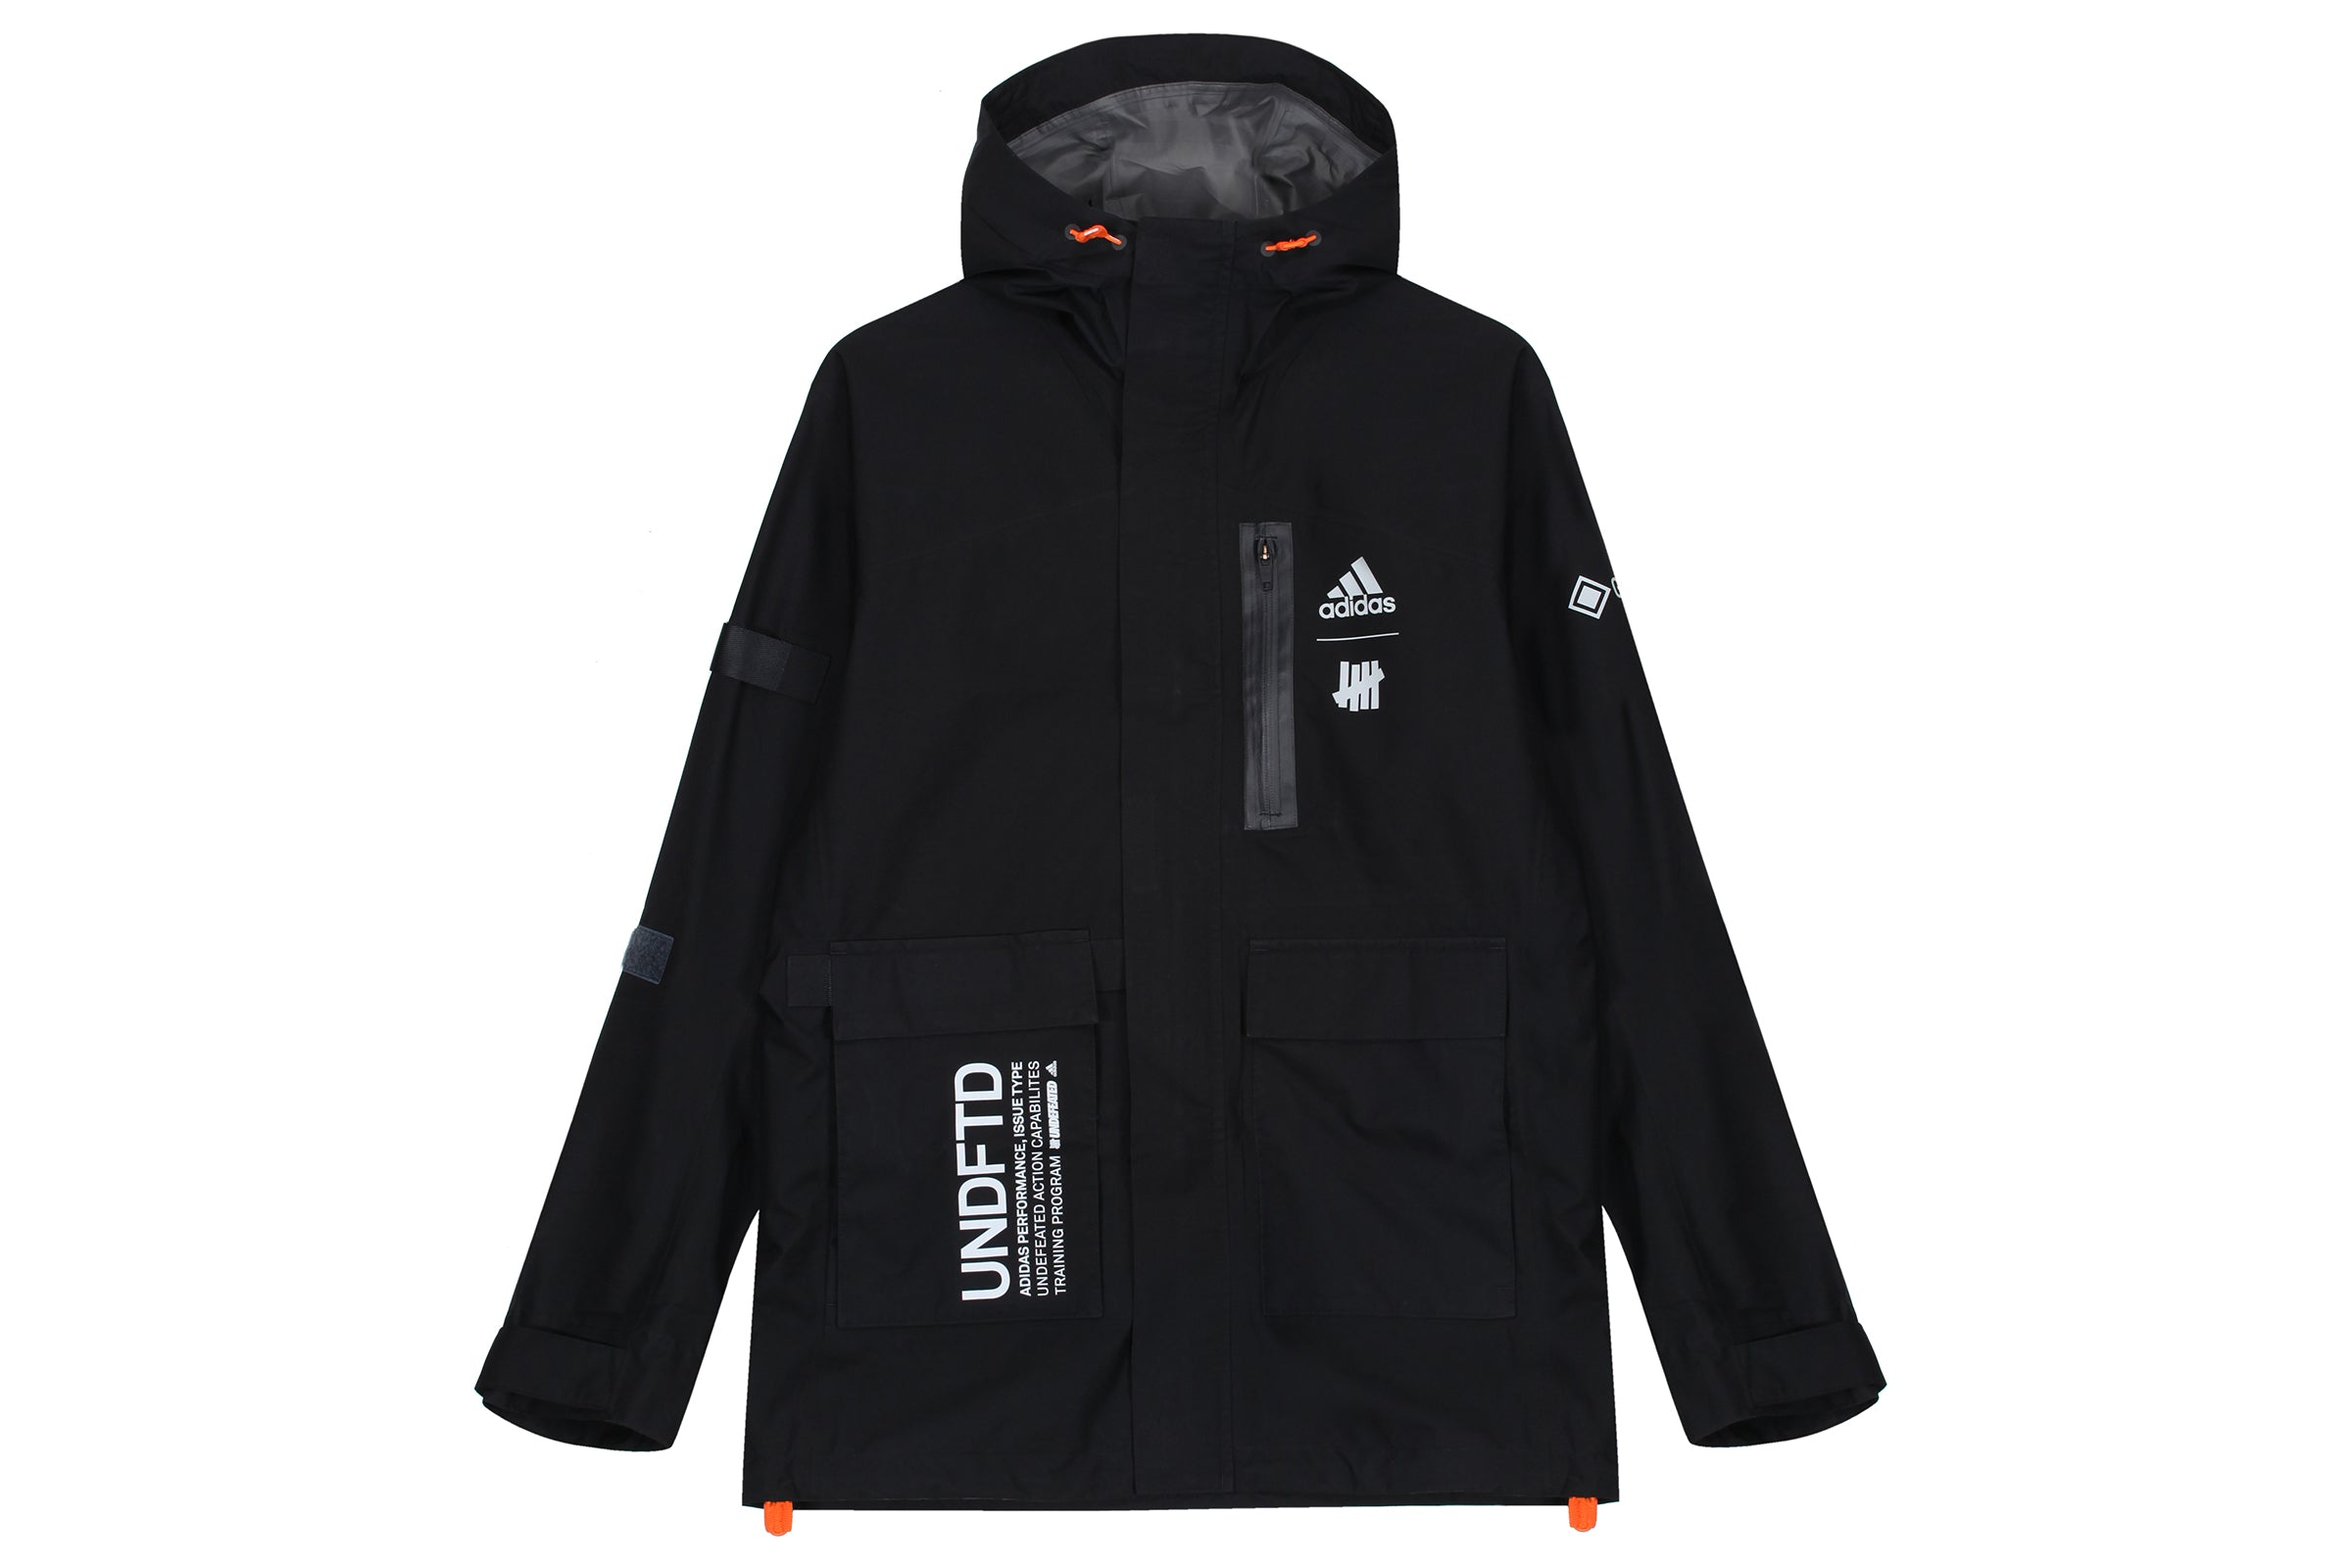 Adidas GTX Jacket x Undefeated